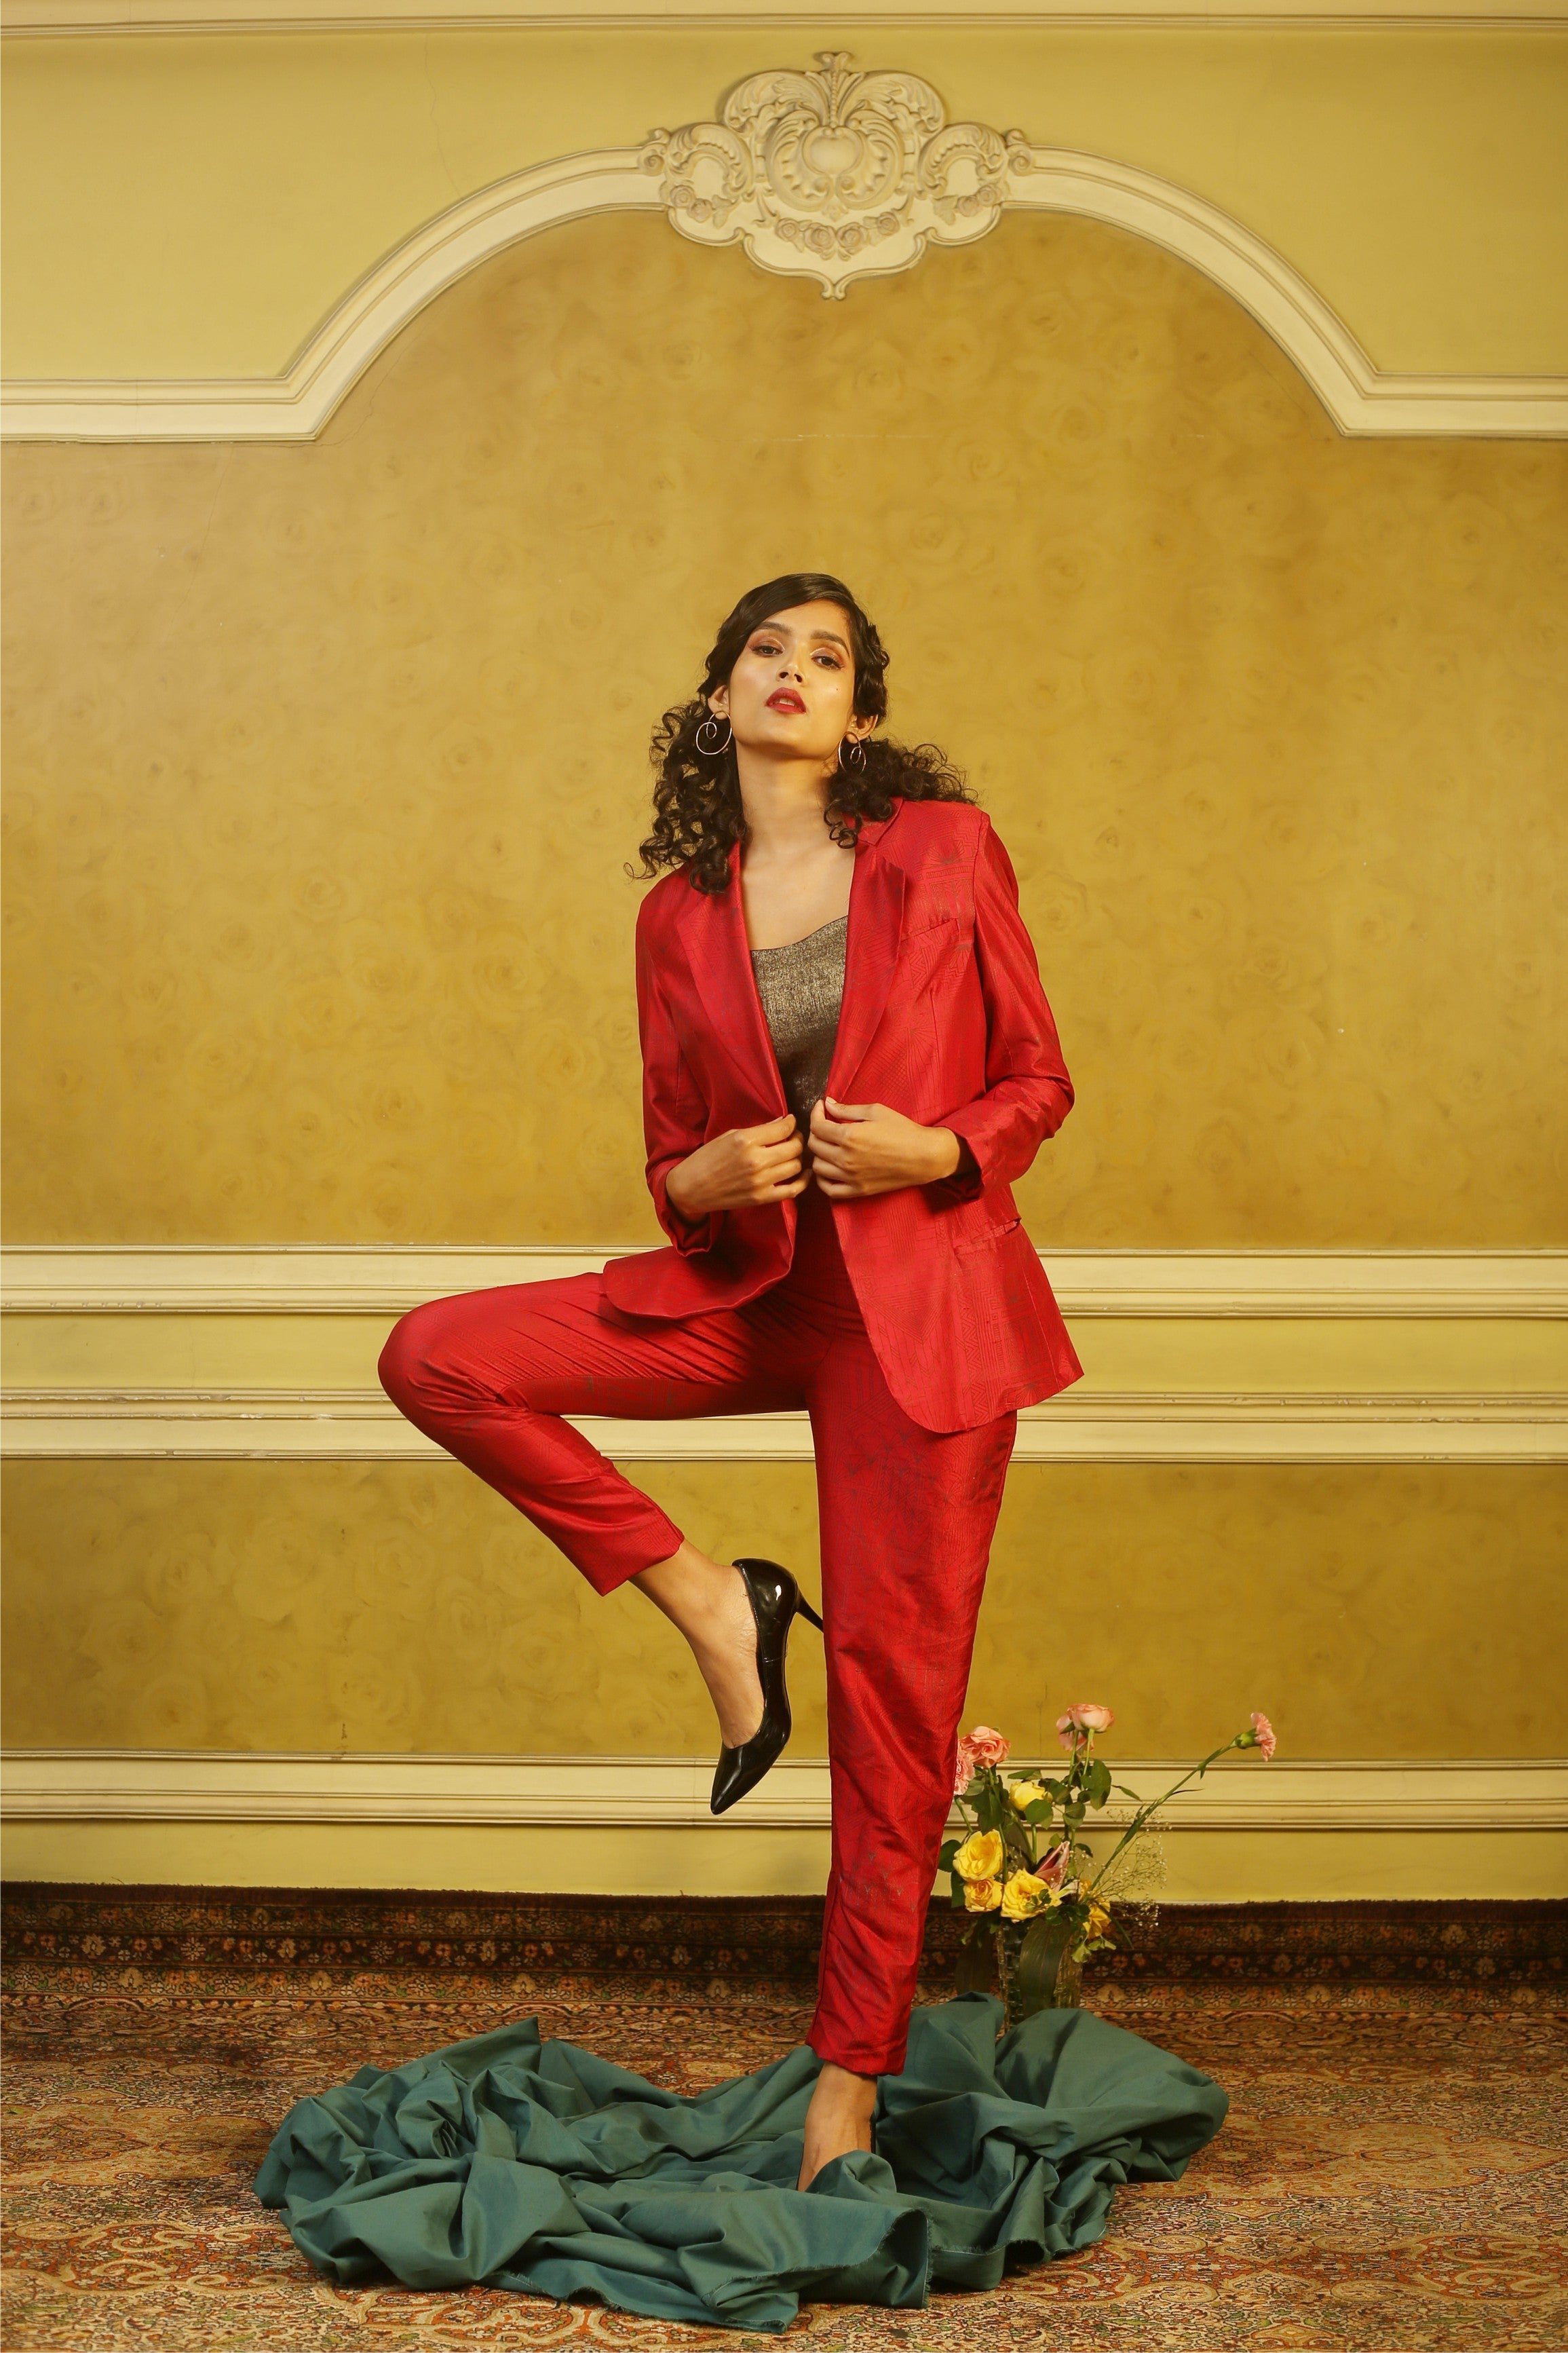 Brick Red Art Deco Pant-Suit with Gold Bustier